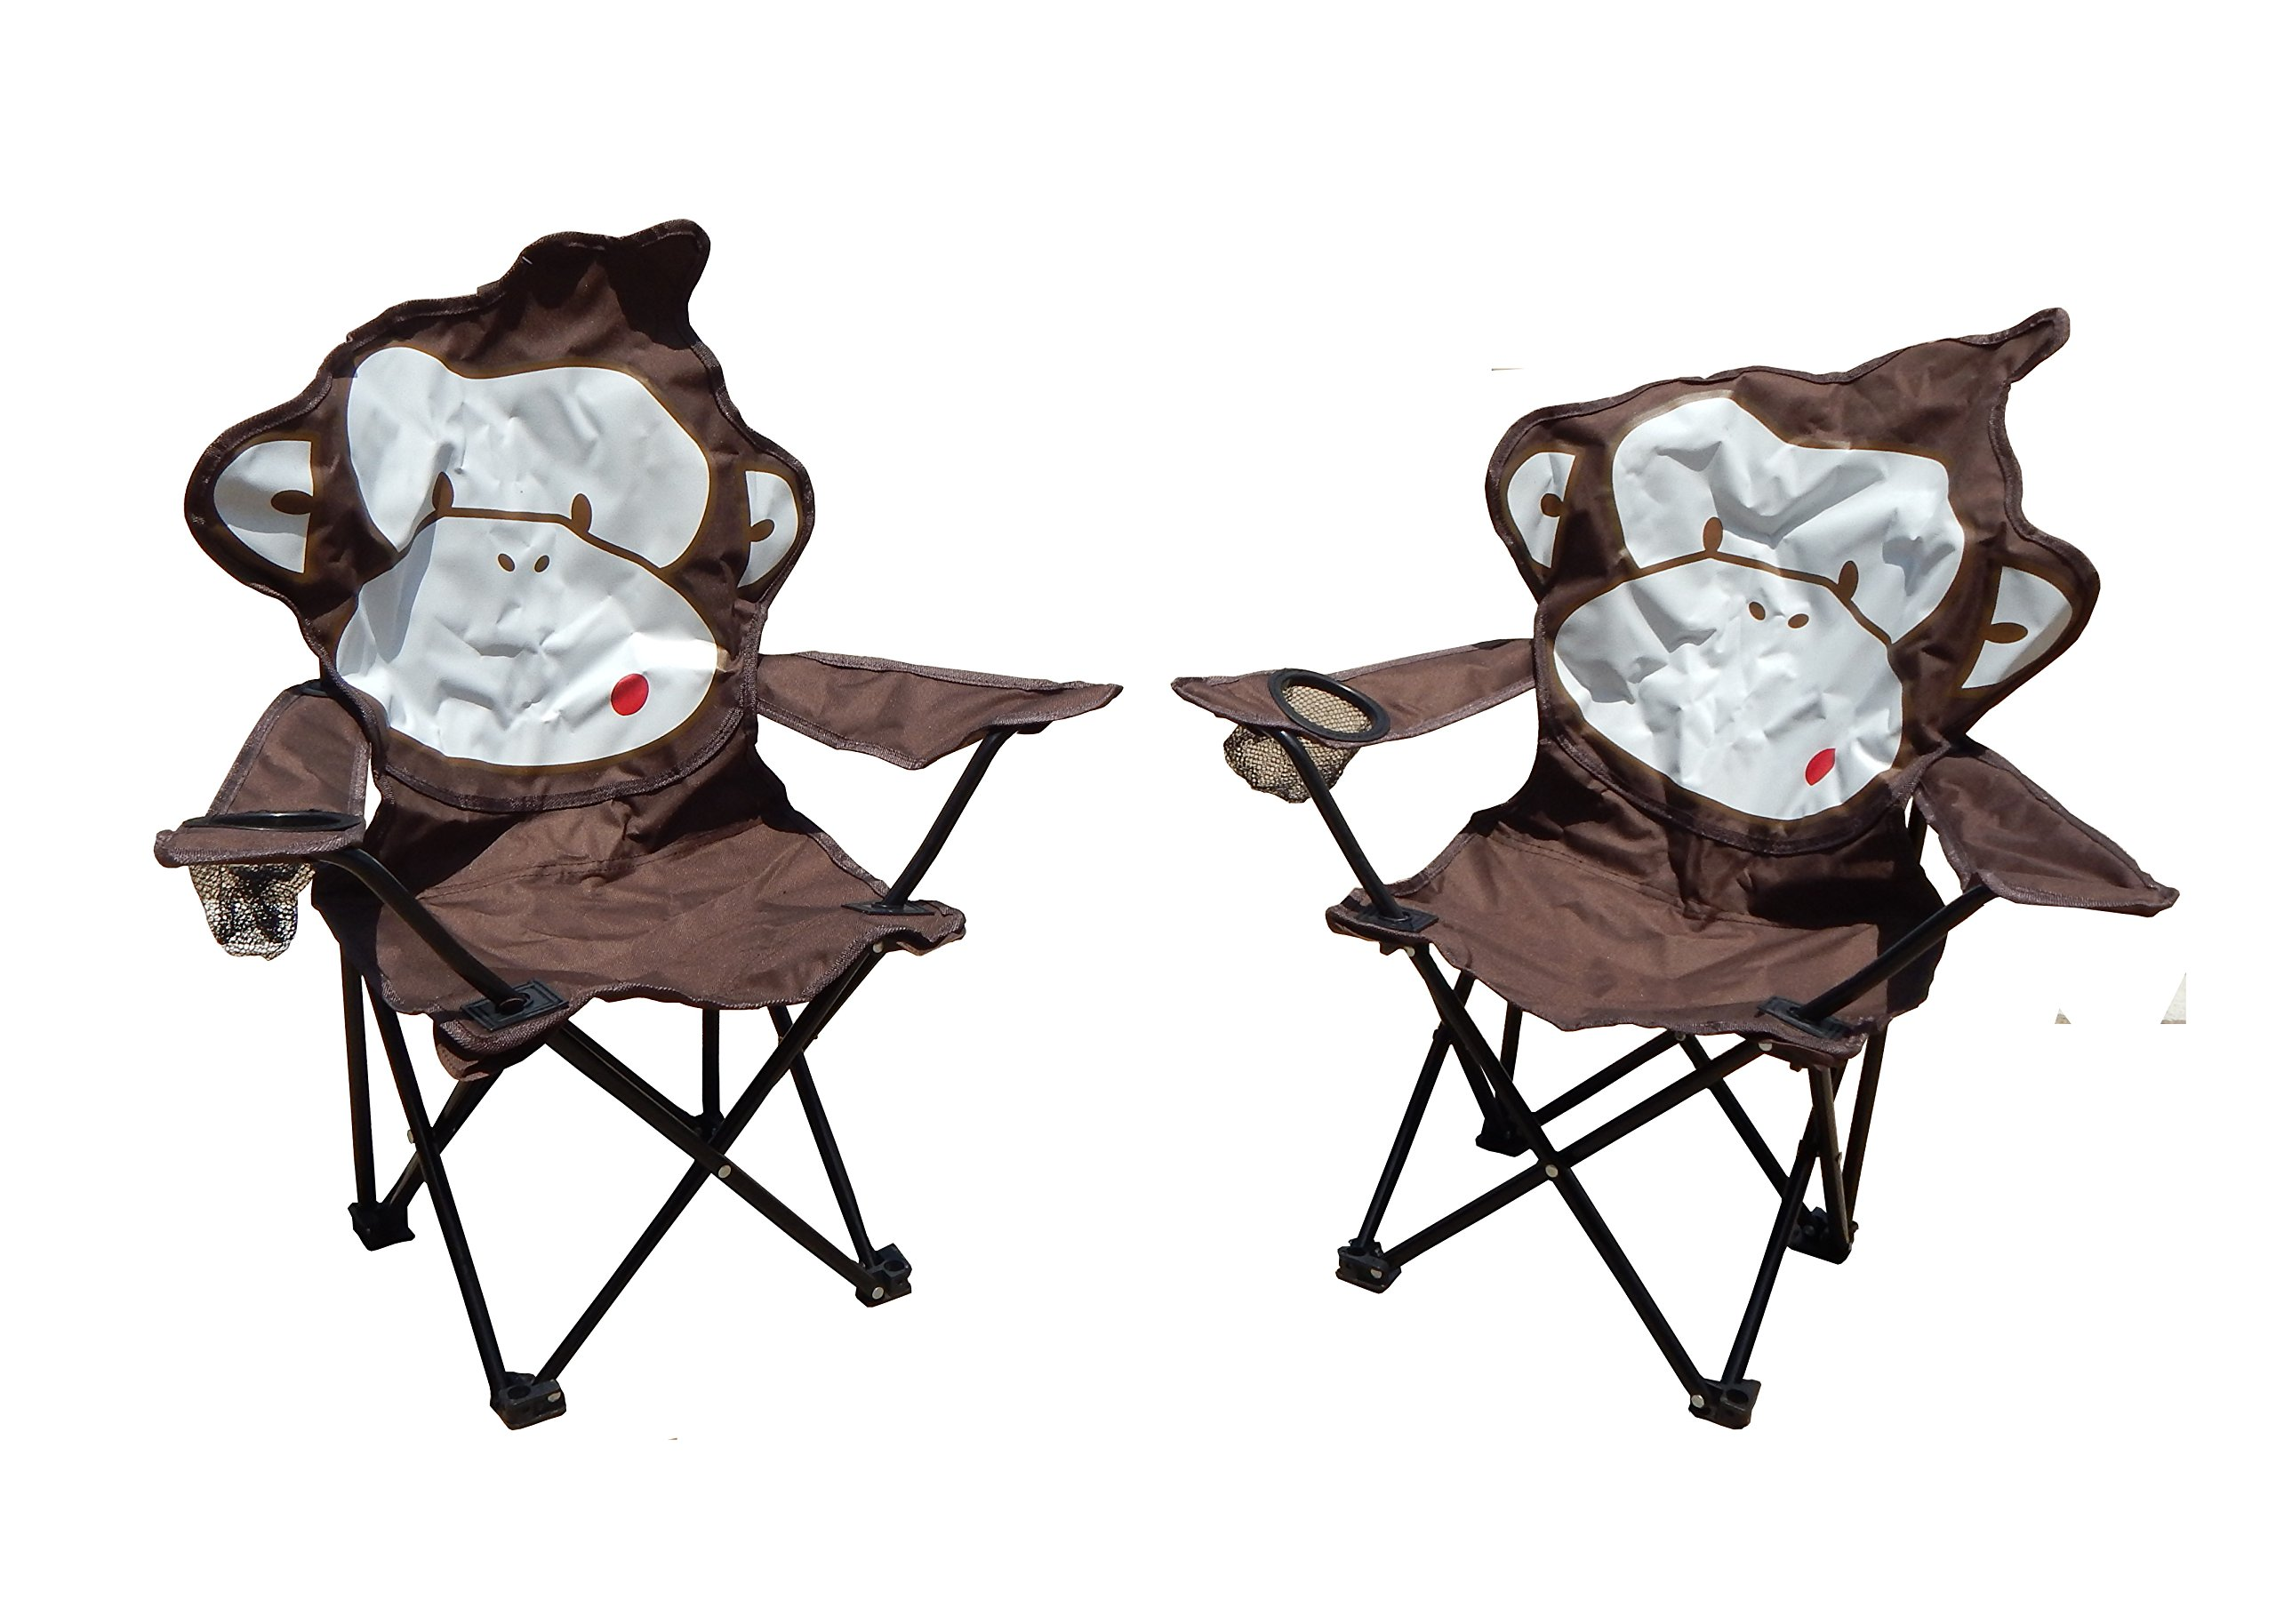 Folding Kids Camping Chairs in Animal Designs by J&Y Home & Garden (Set of 2) by MAOS (Image #5)